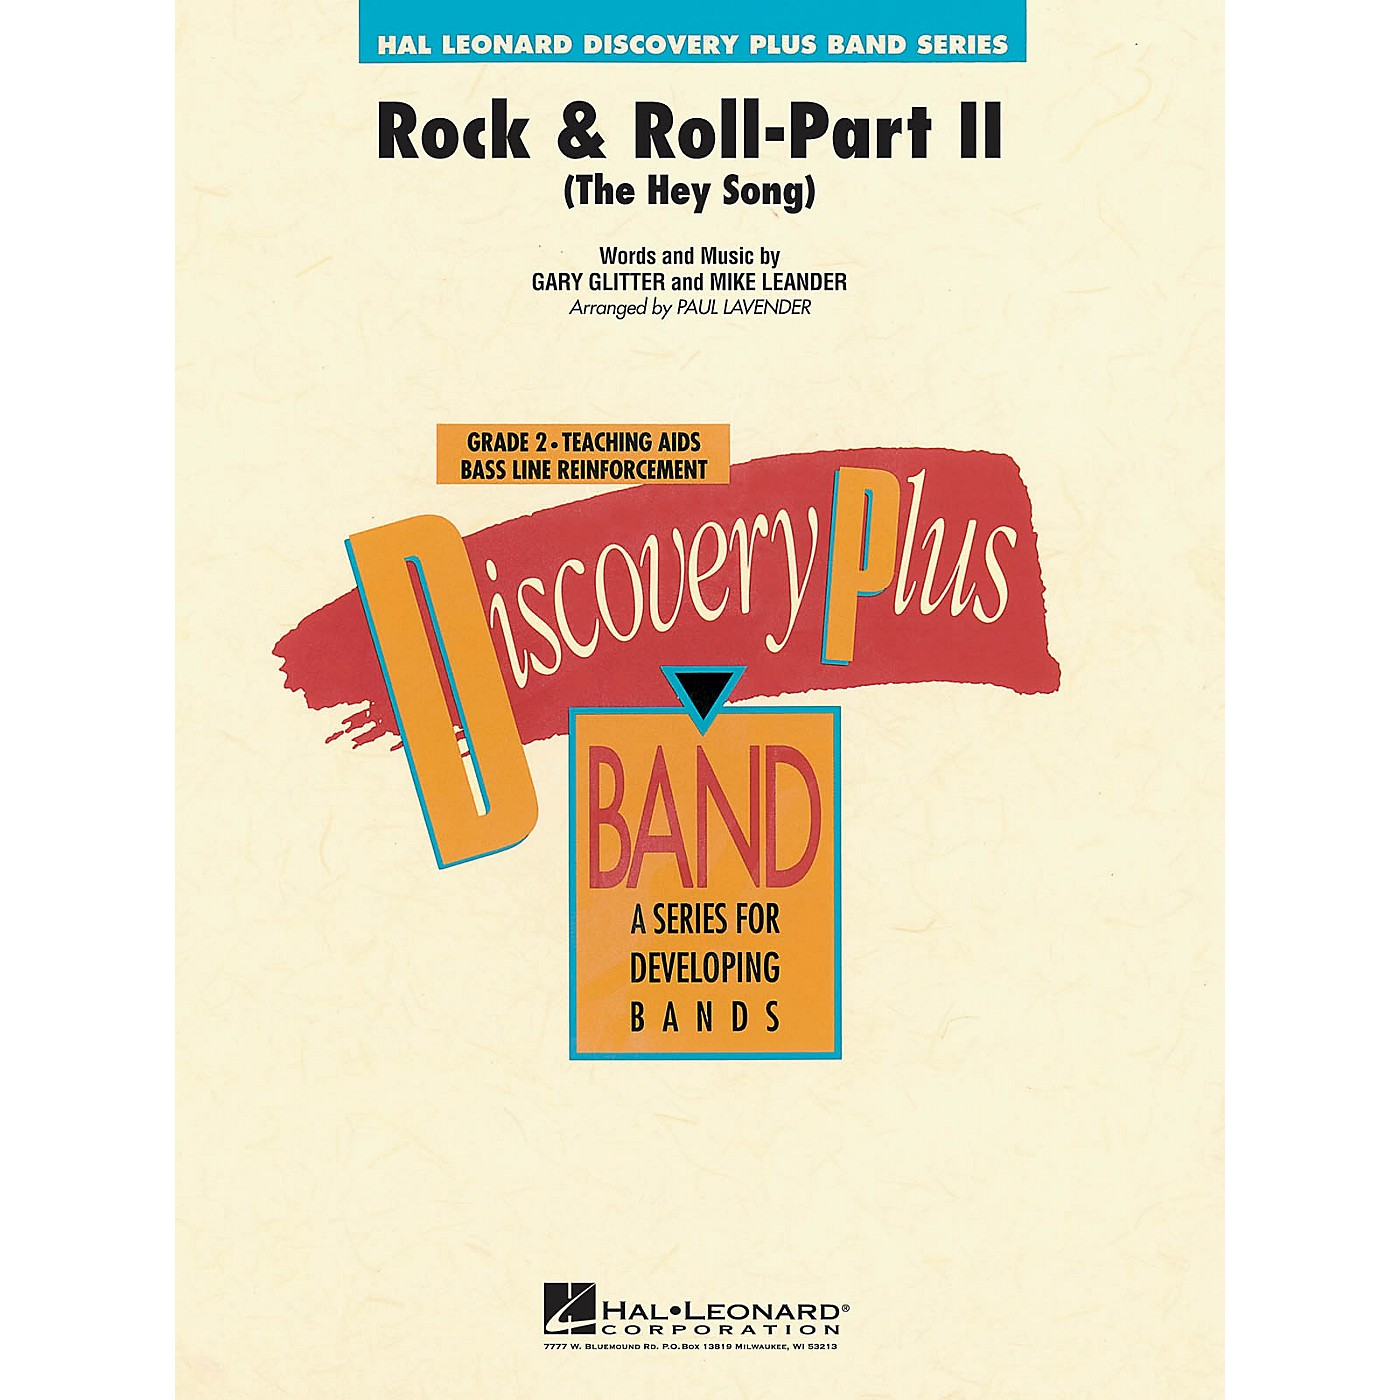 Hal Leonard Rock & Roll - Part II (The Hey Song) - Discovery Plus Concert Band Series Level 2 arranged by Paul Lavender thumbnail